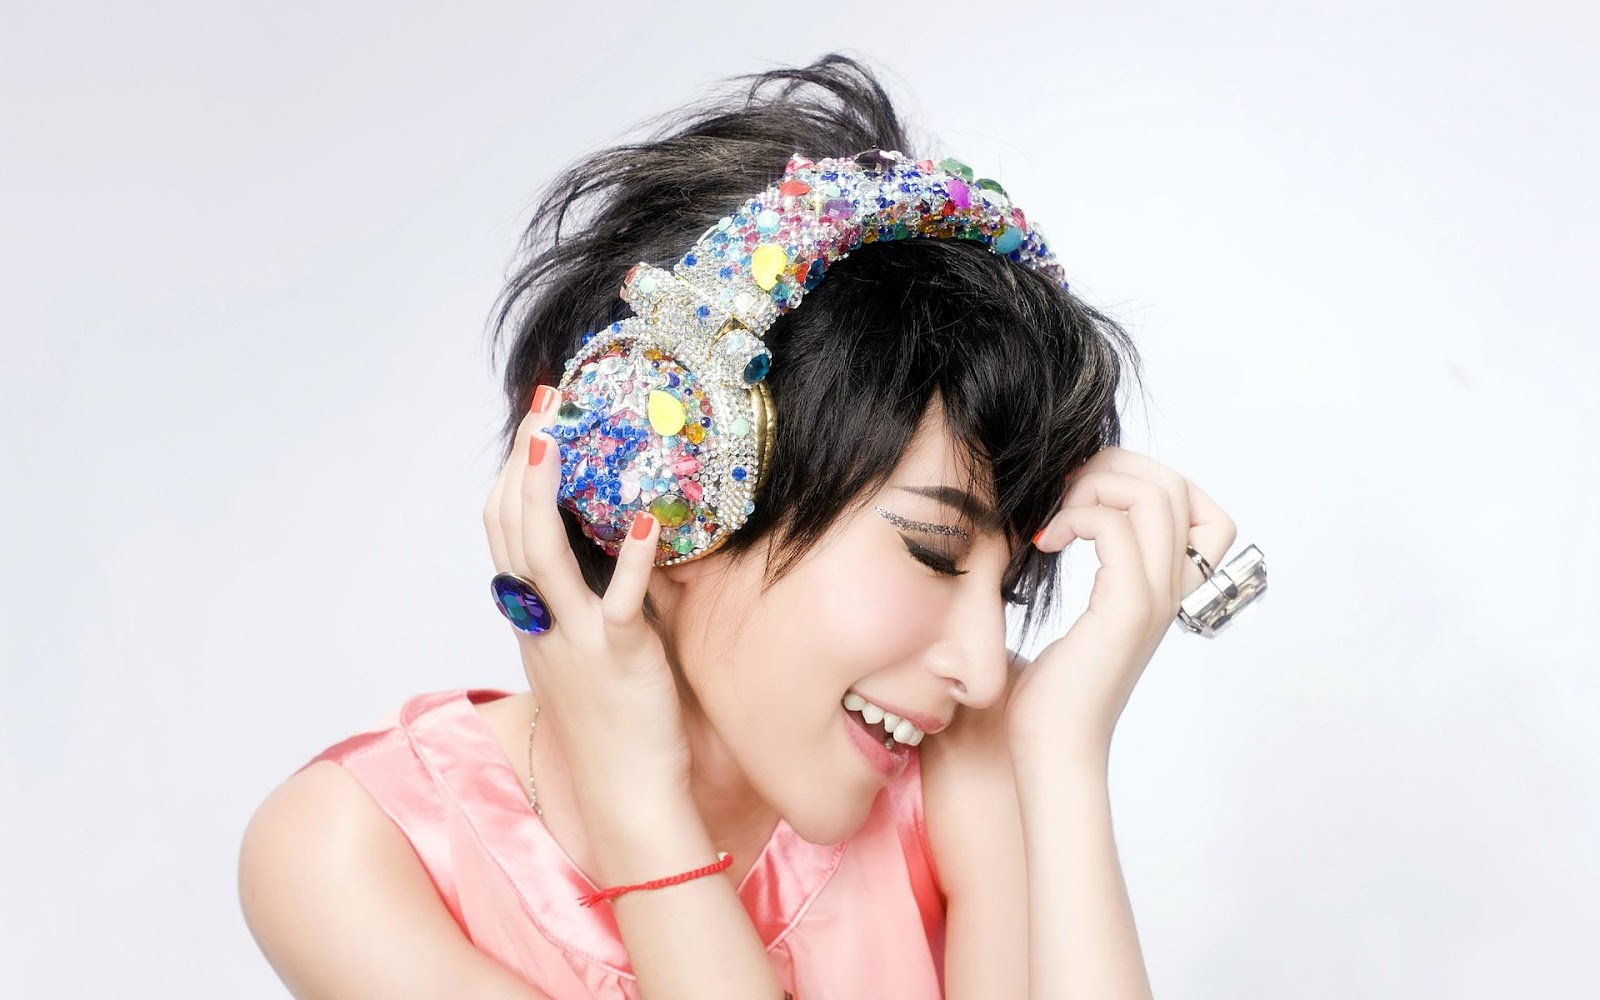 music girl wallpapers headphones - photo #19